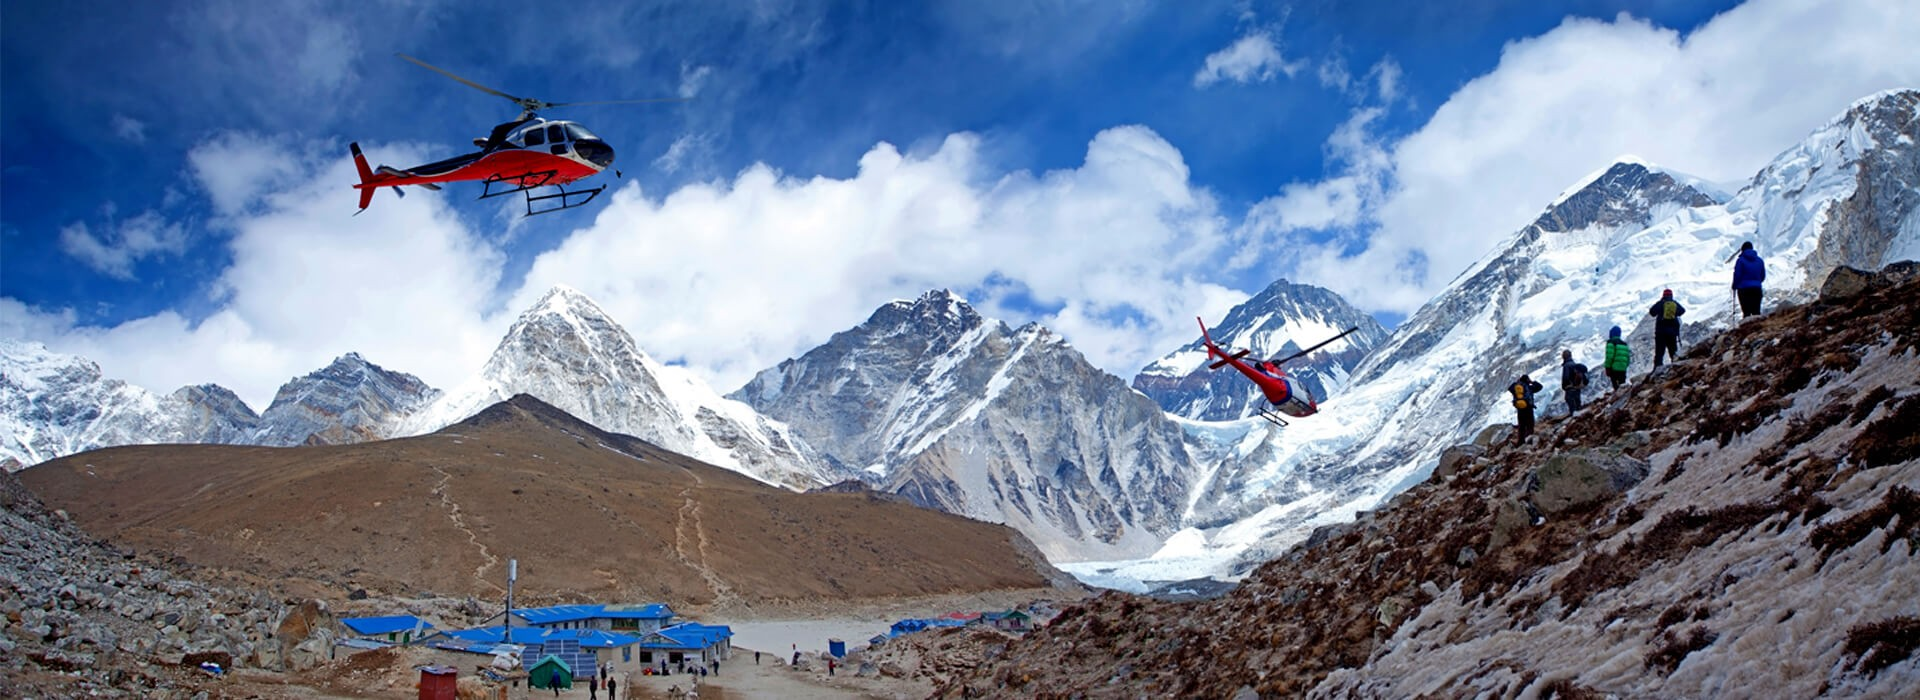 ONLINE HELI TOURS BOOKING IN NEPAL